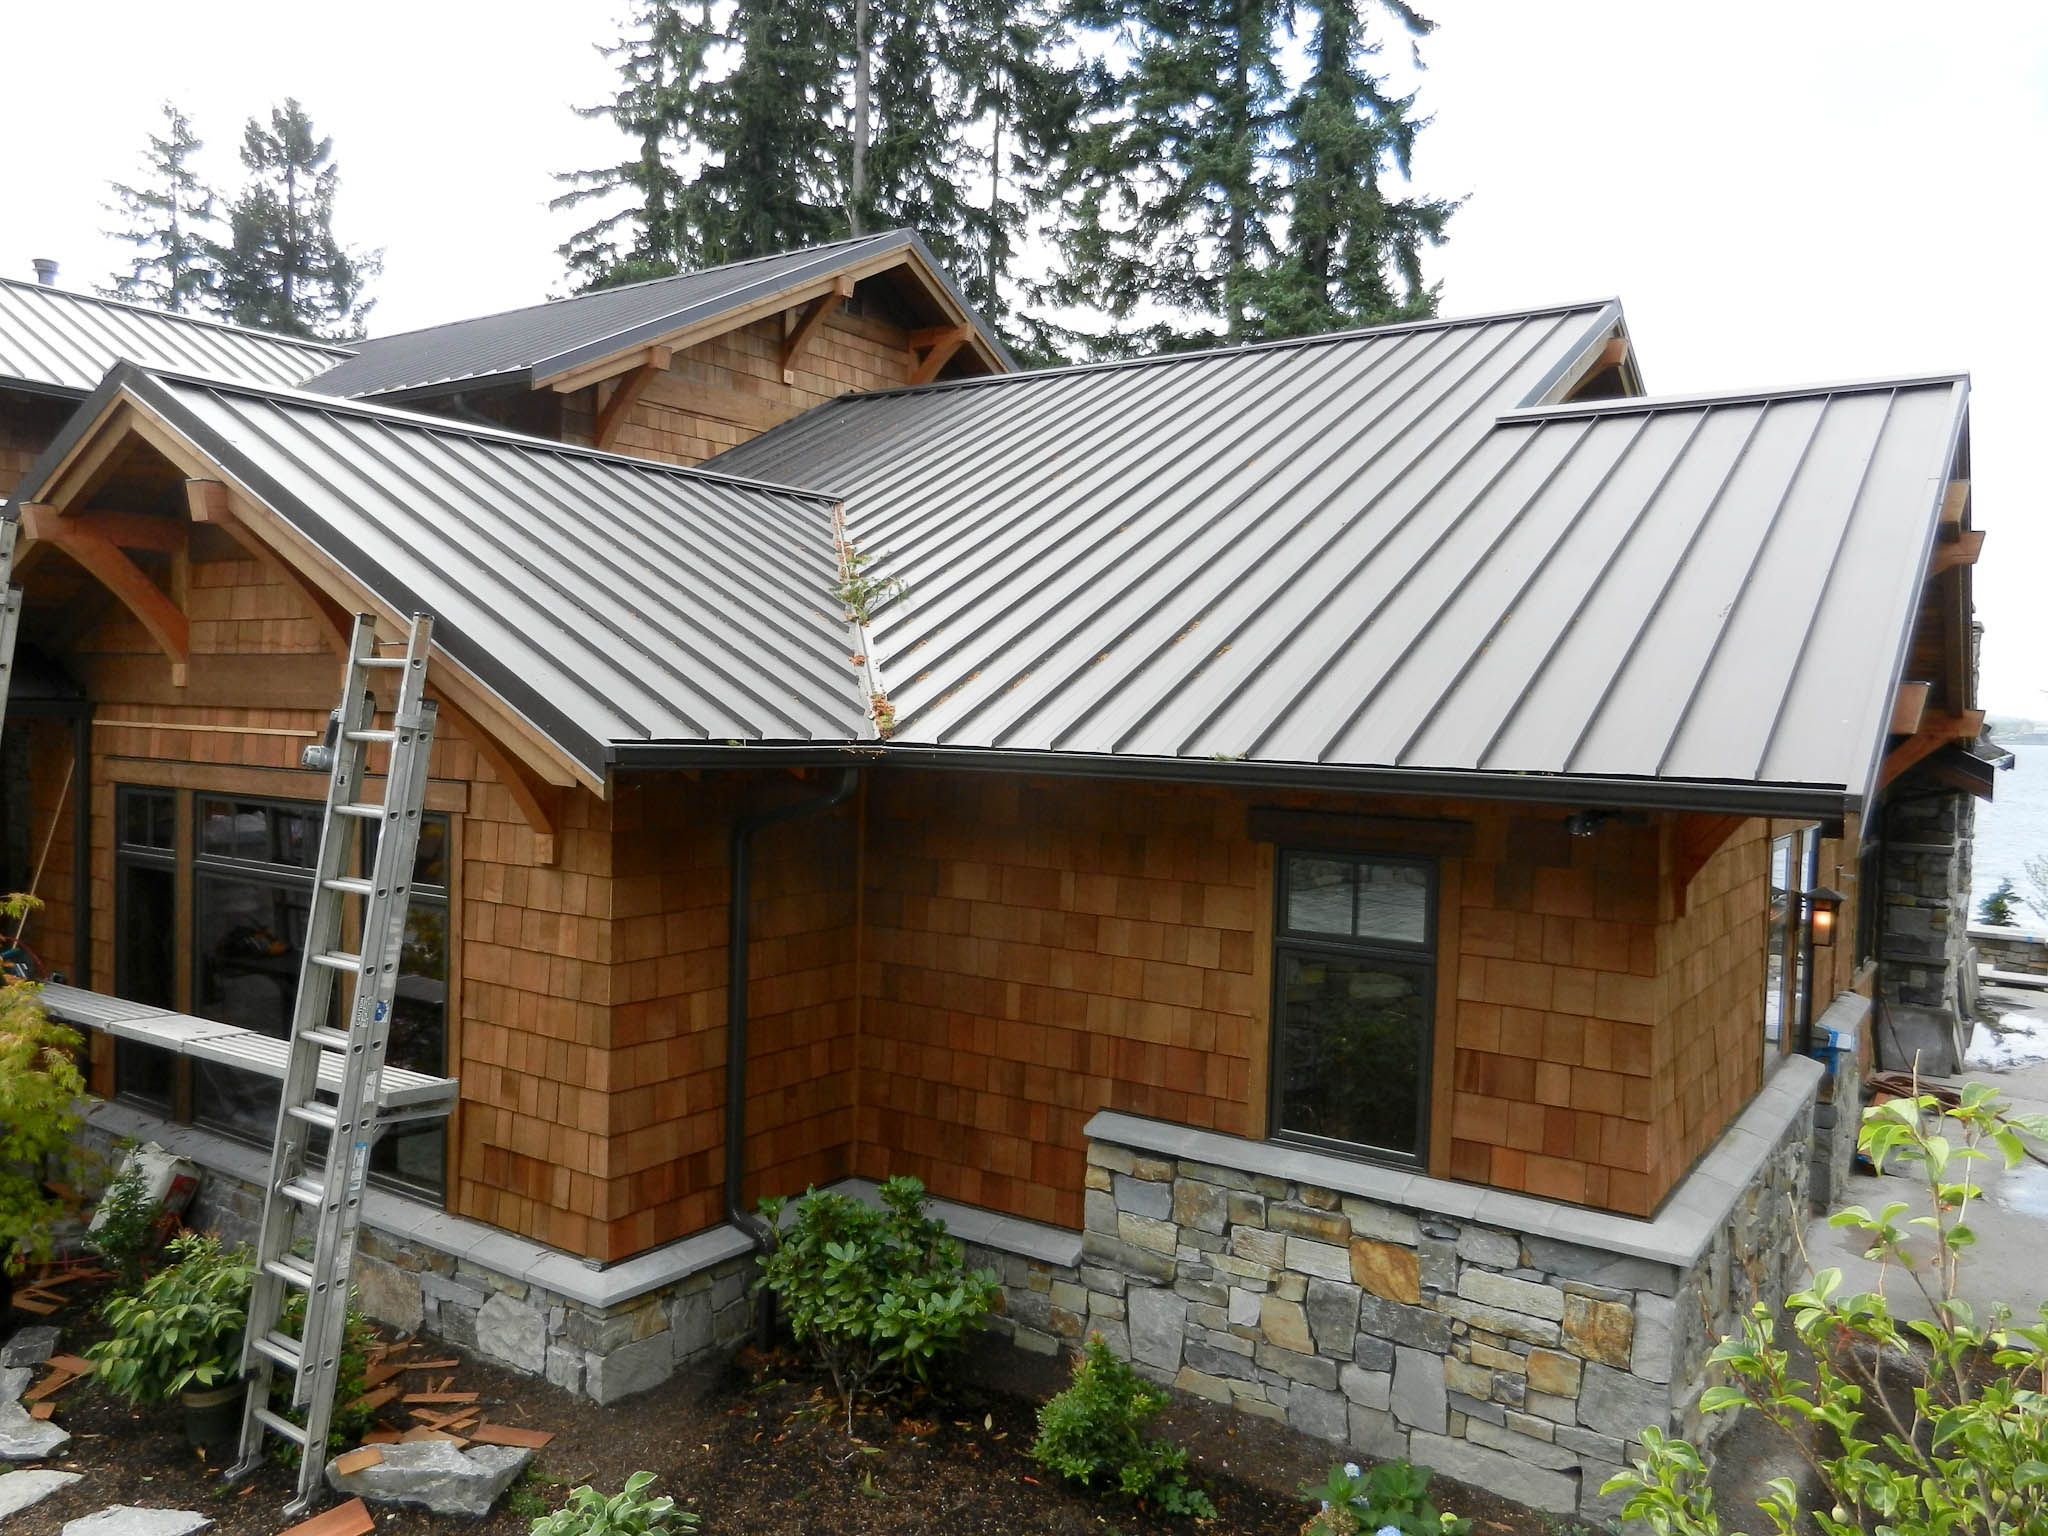 Best While More Expensive Than Asphalt Metal Roofing Lasts Longer And Is More Wind Resistant Home 400 x 300